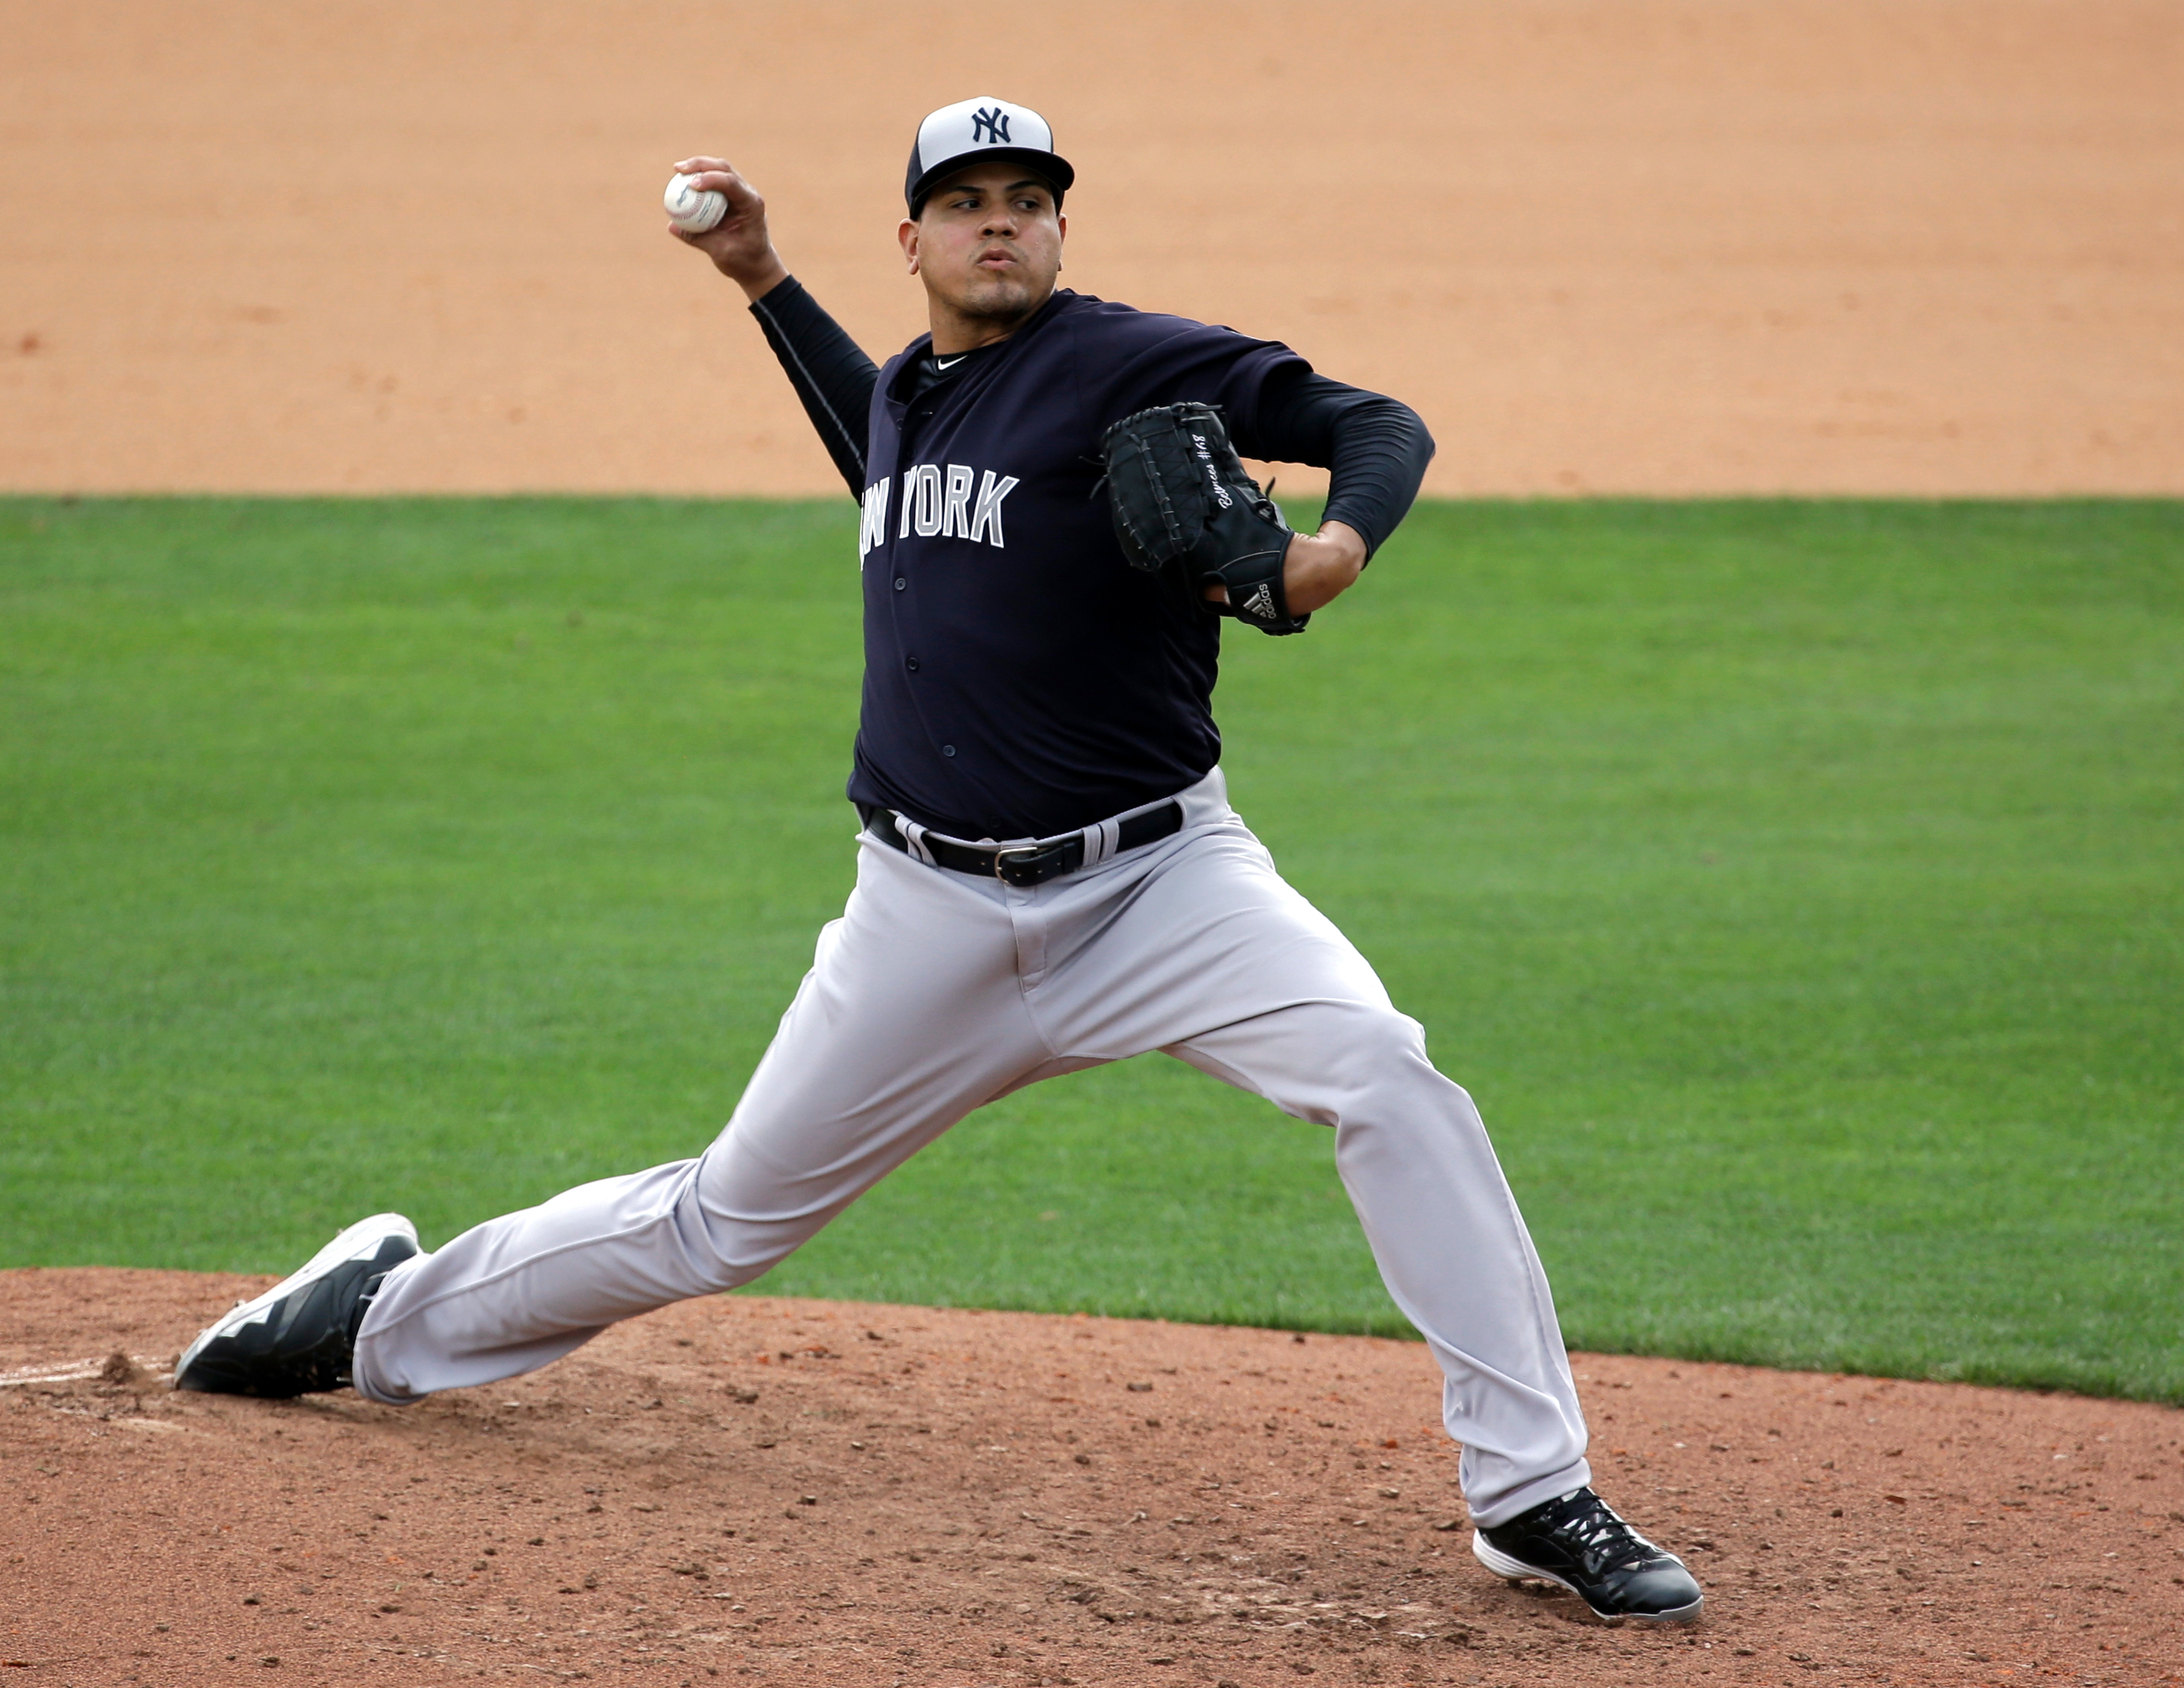 FILE- In this March 30, 2016, file photo, New York Yankees' Dellin Betances pitches against the Atlanta Braves in the seventh inning of a spring training baseball game in Kissimmee, Fla. Betances and Andrew Miller, the Yankees' dynamic duo of late-inning